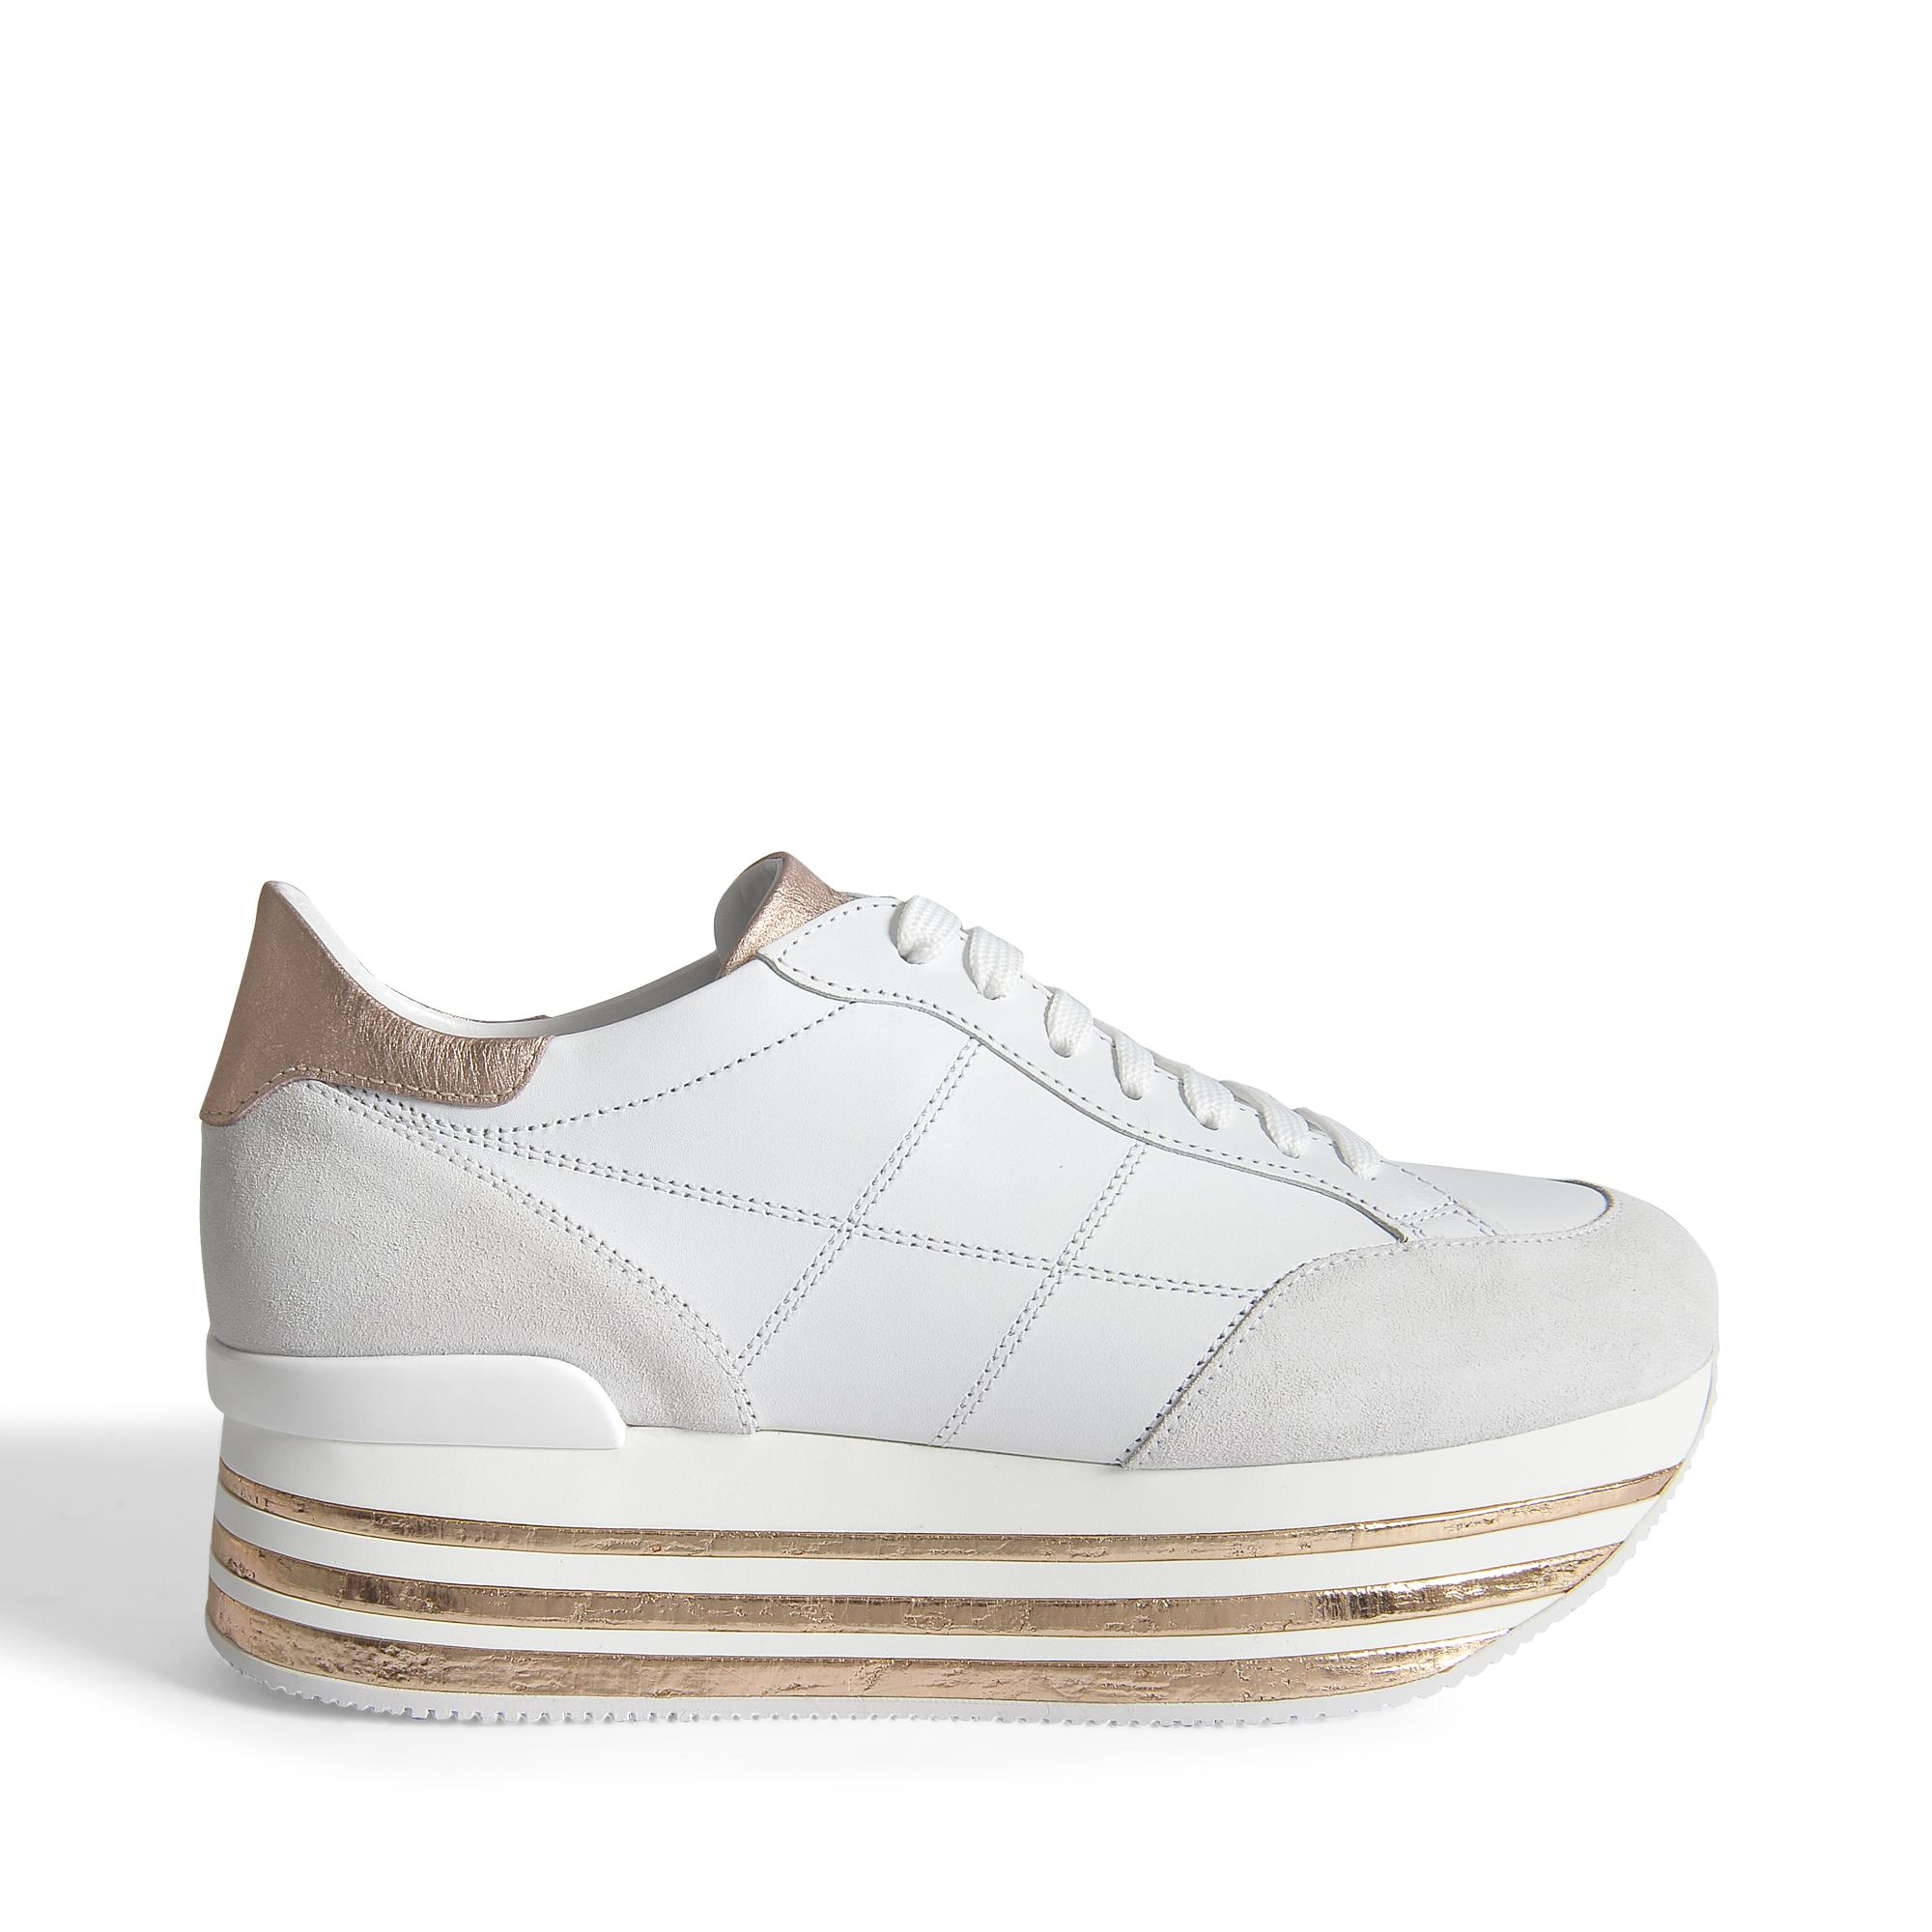 H349 Maxi Platform Sneakers with Cork Detail in White and Rose Gold Leather and Cork Hogan 6PfKn